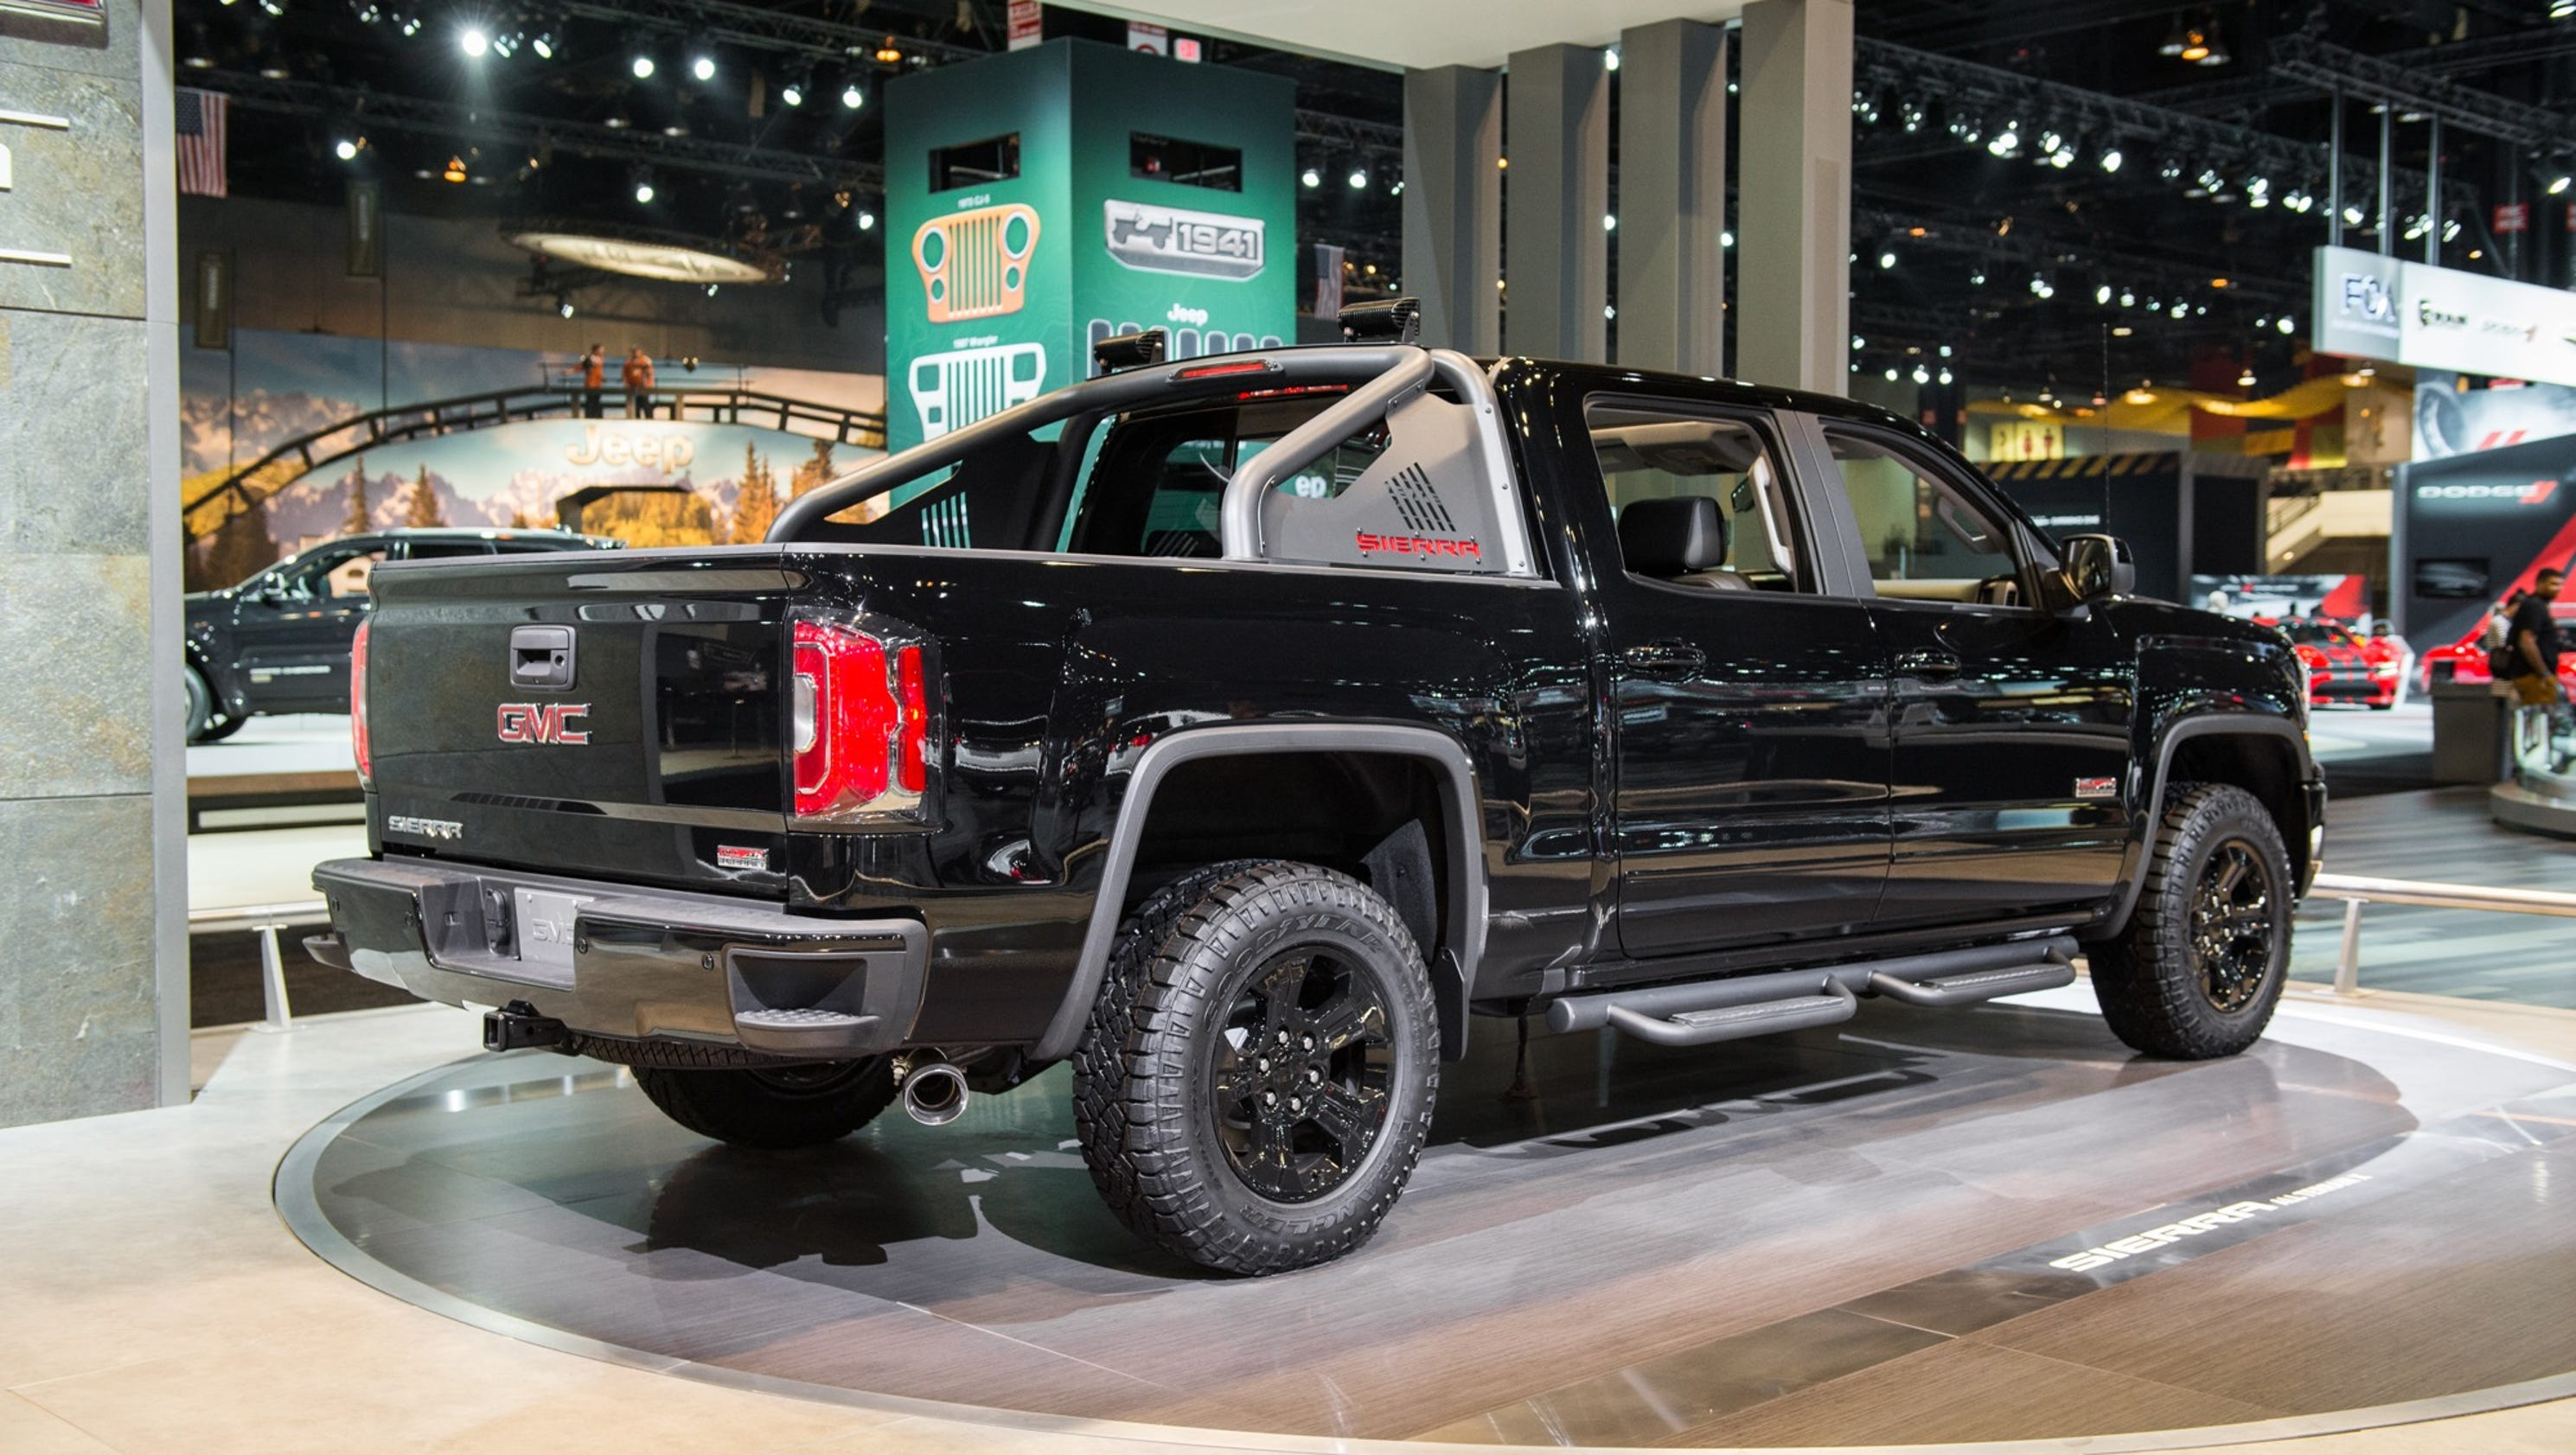 Truck review: 2016 GMC Sierra 1500 All Terrain